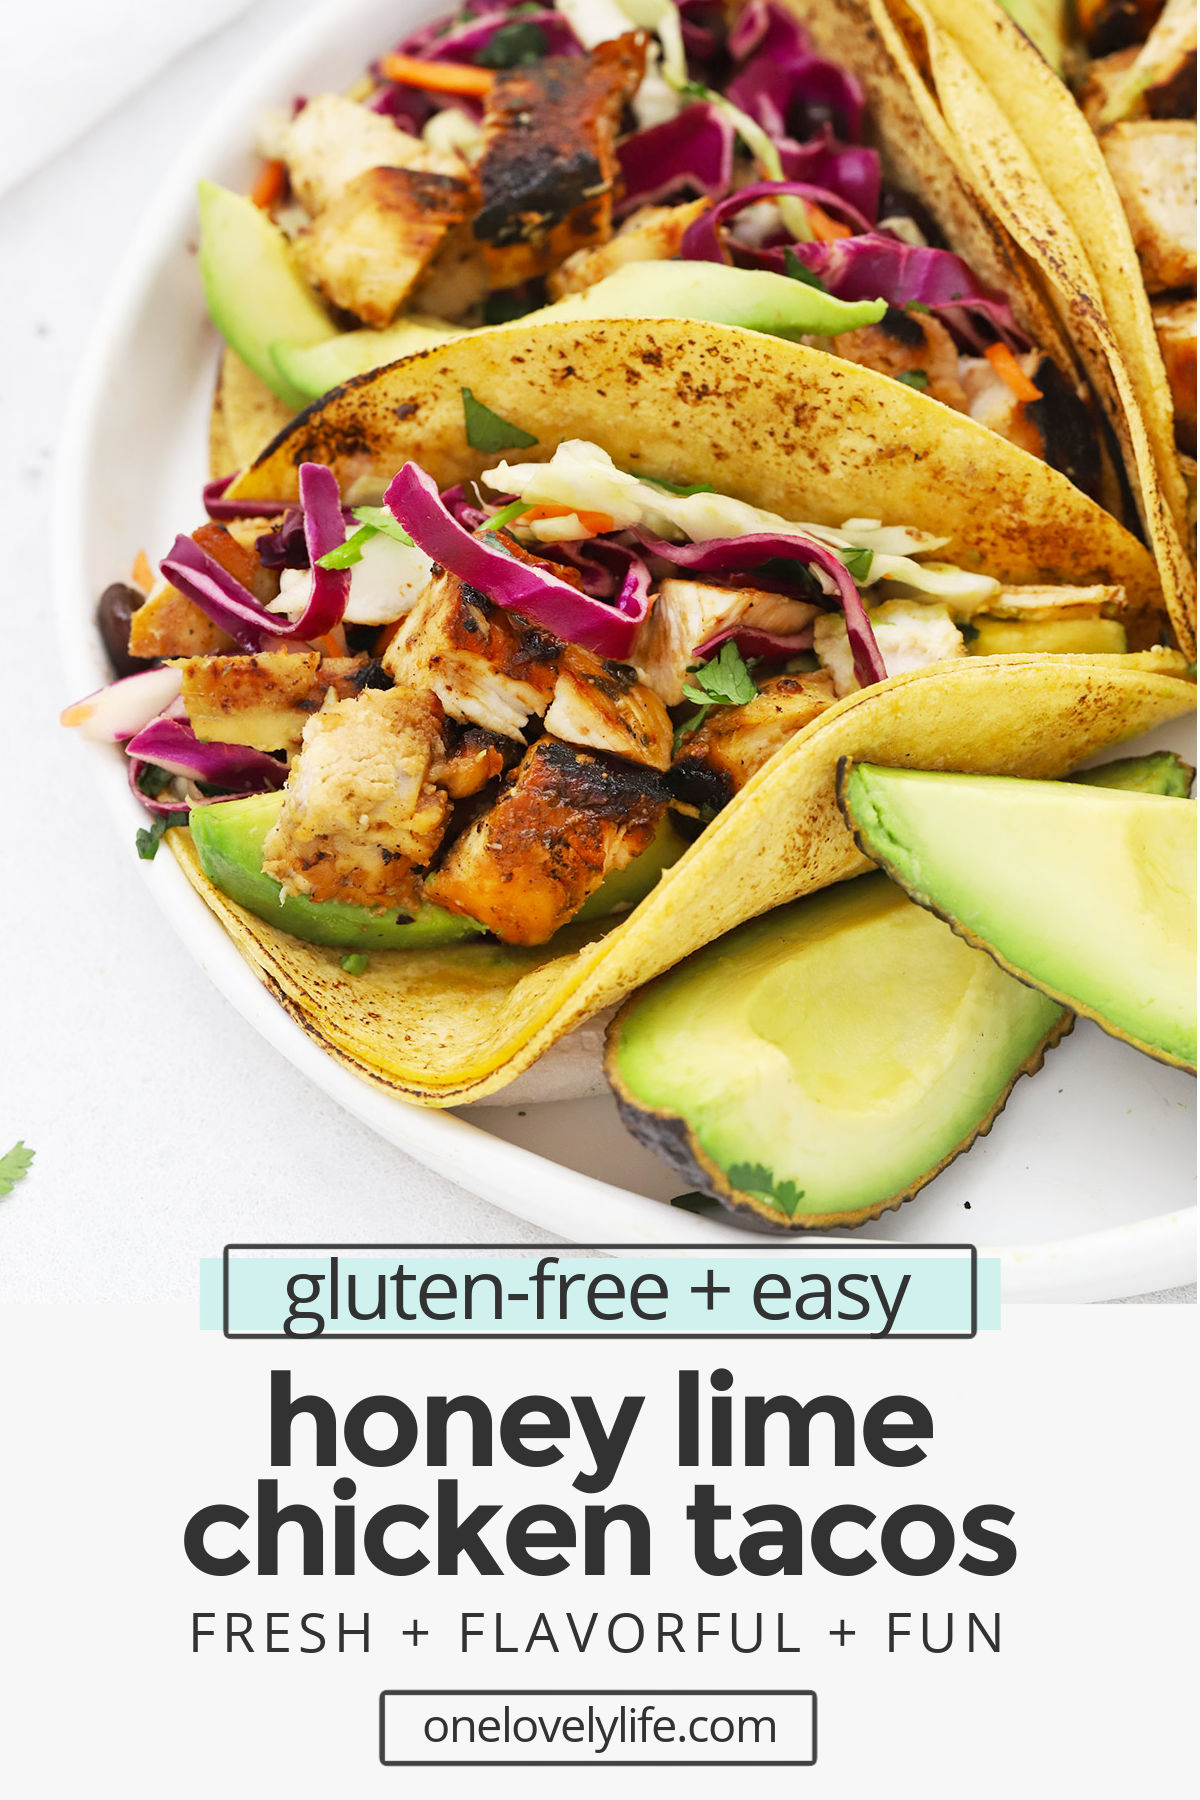 Honey Lime Chicken Tacos - Our honey lime chicken marinade gives these chicken tacos such delicious flavor. Don't miss our favorite toppings to add to these tasty tacos! (Gluten-Free) // Chicken Tacos recipe // Lime Chicken Tacos // Chili Lime Chicken Tacos // healthy chicken tacos // the best chicken tacos // grilled chicken tacos #tacos #chicken #tacotuesday #texmex